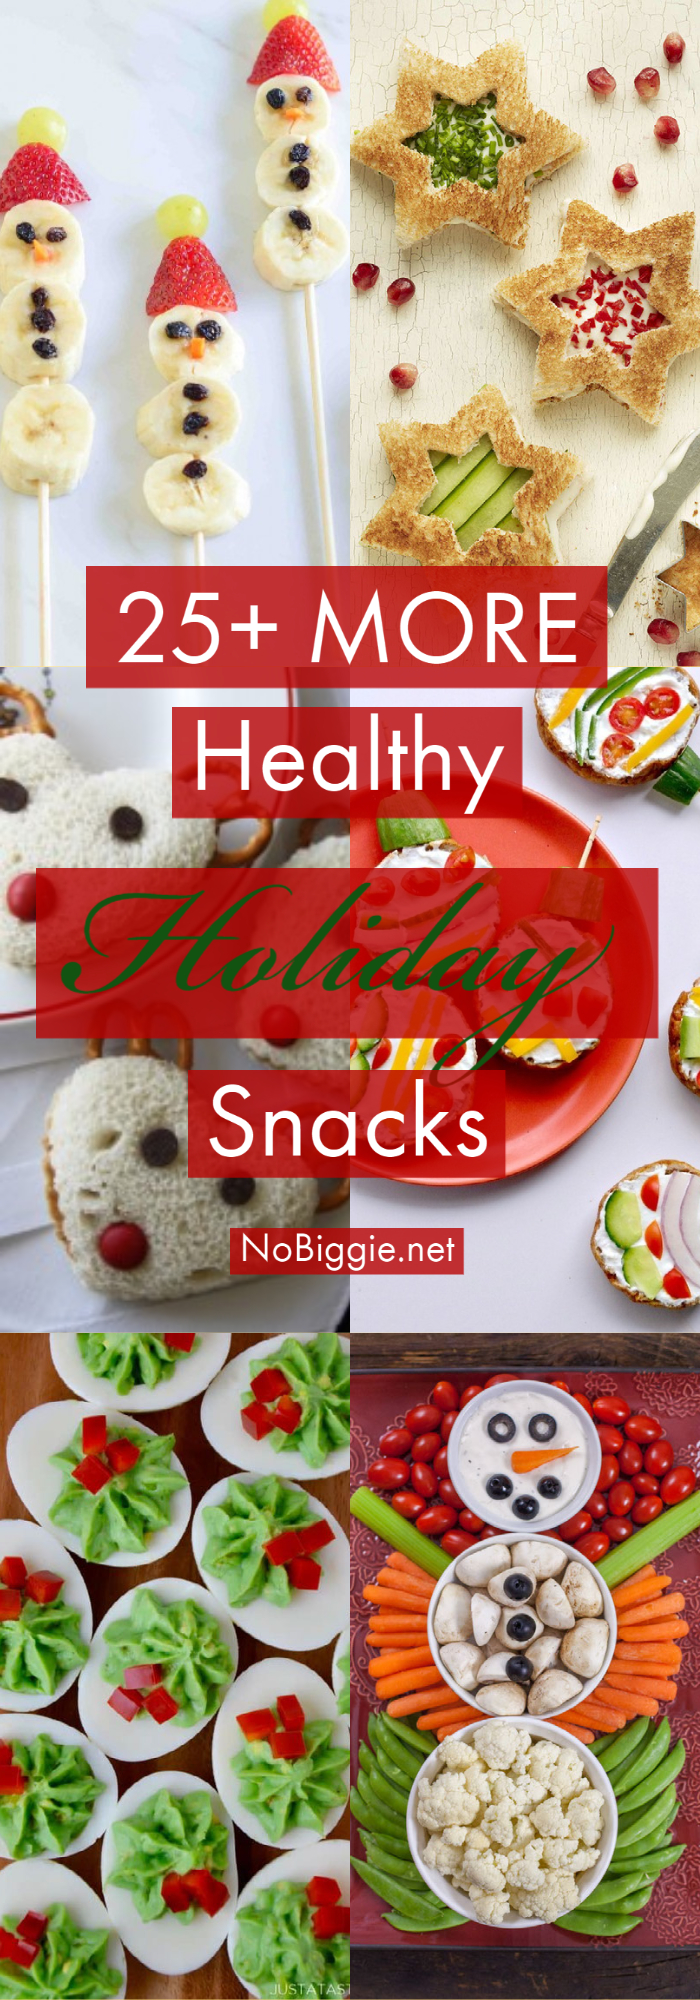 25+ MORE Healthy Holiday Snacks